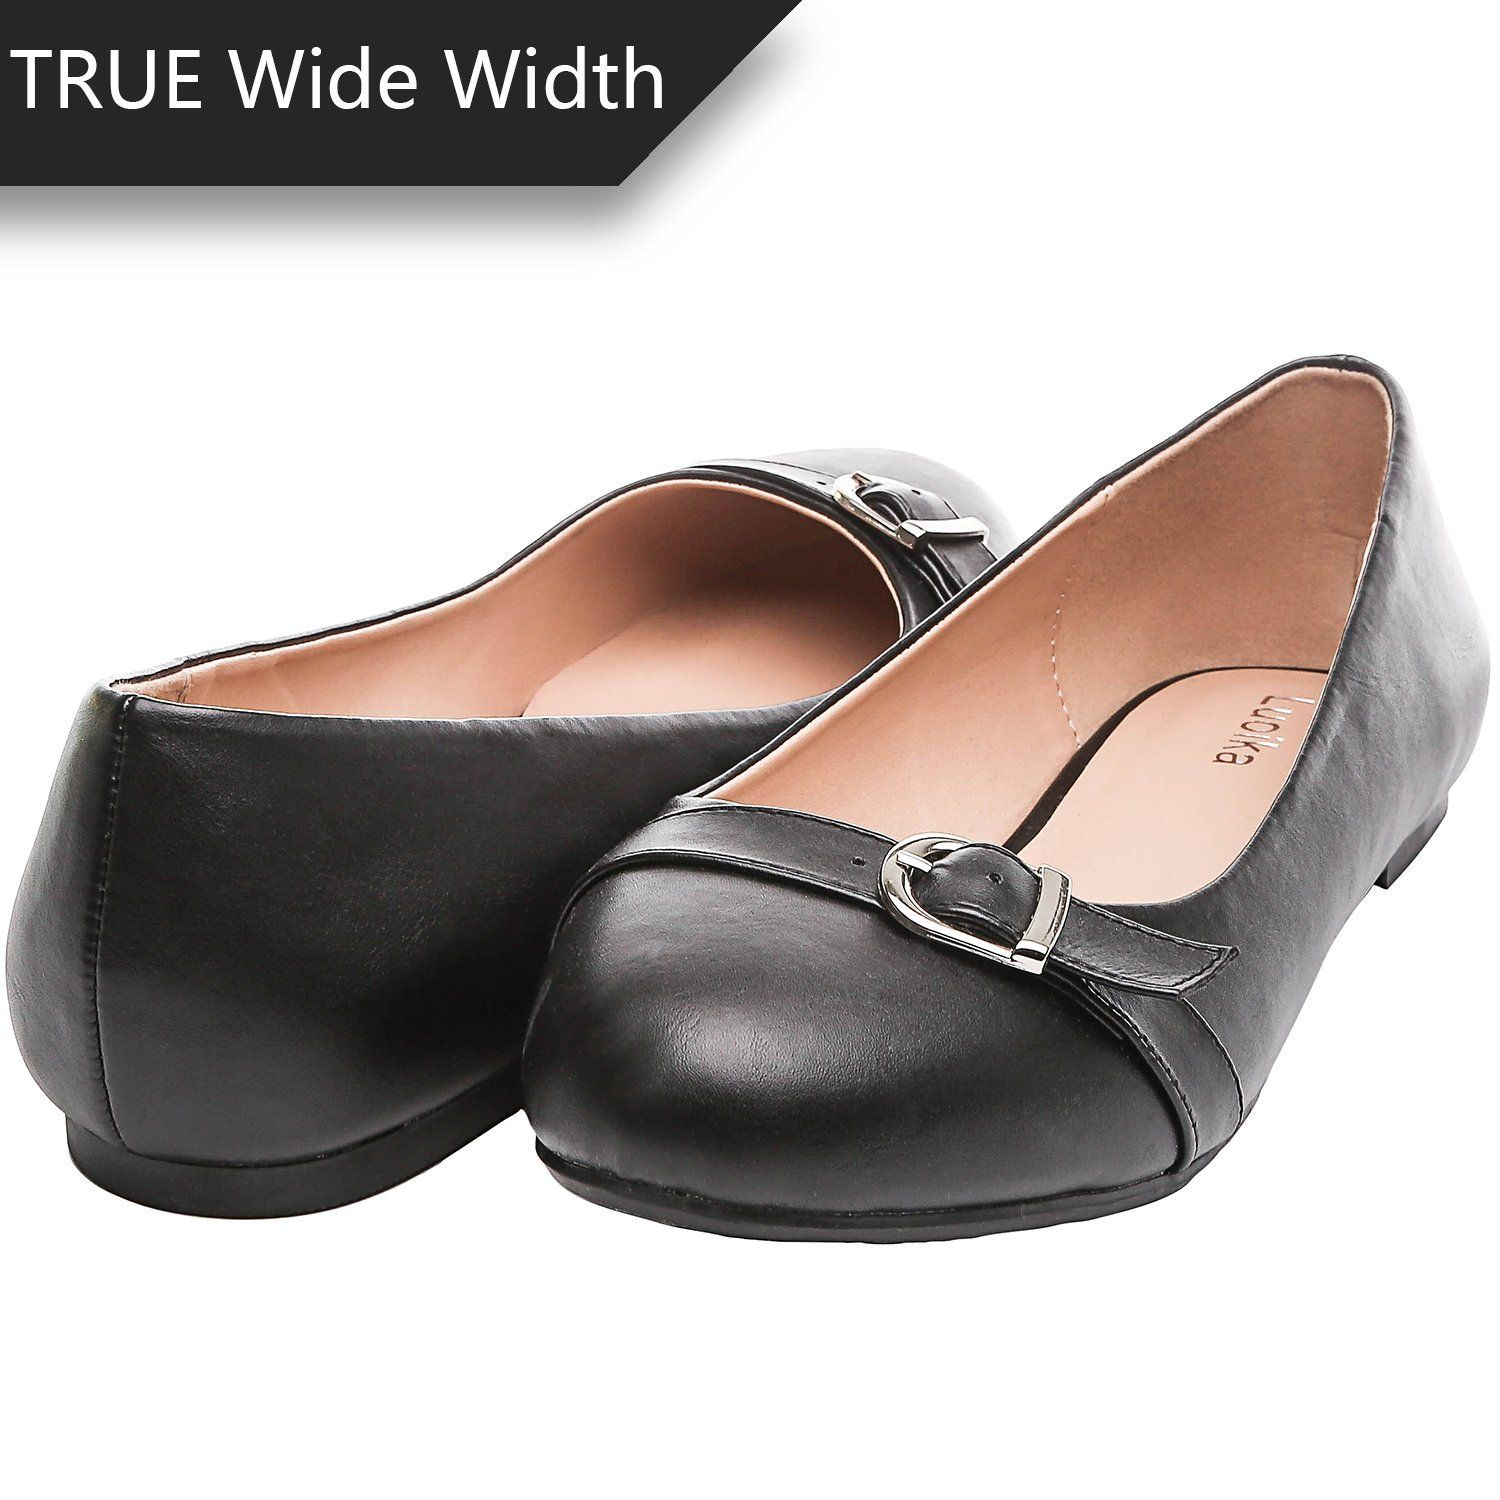 016d9e1e5fe61 Amazon.com | Luoika Women's Wide Width Flat Shoes - Comfortable Slip ...